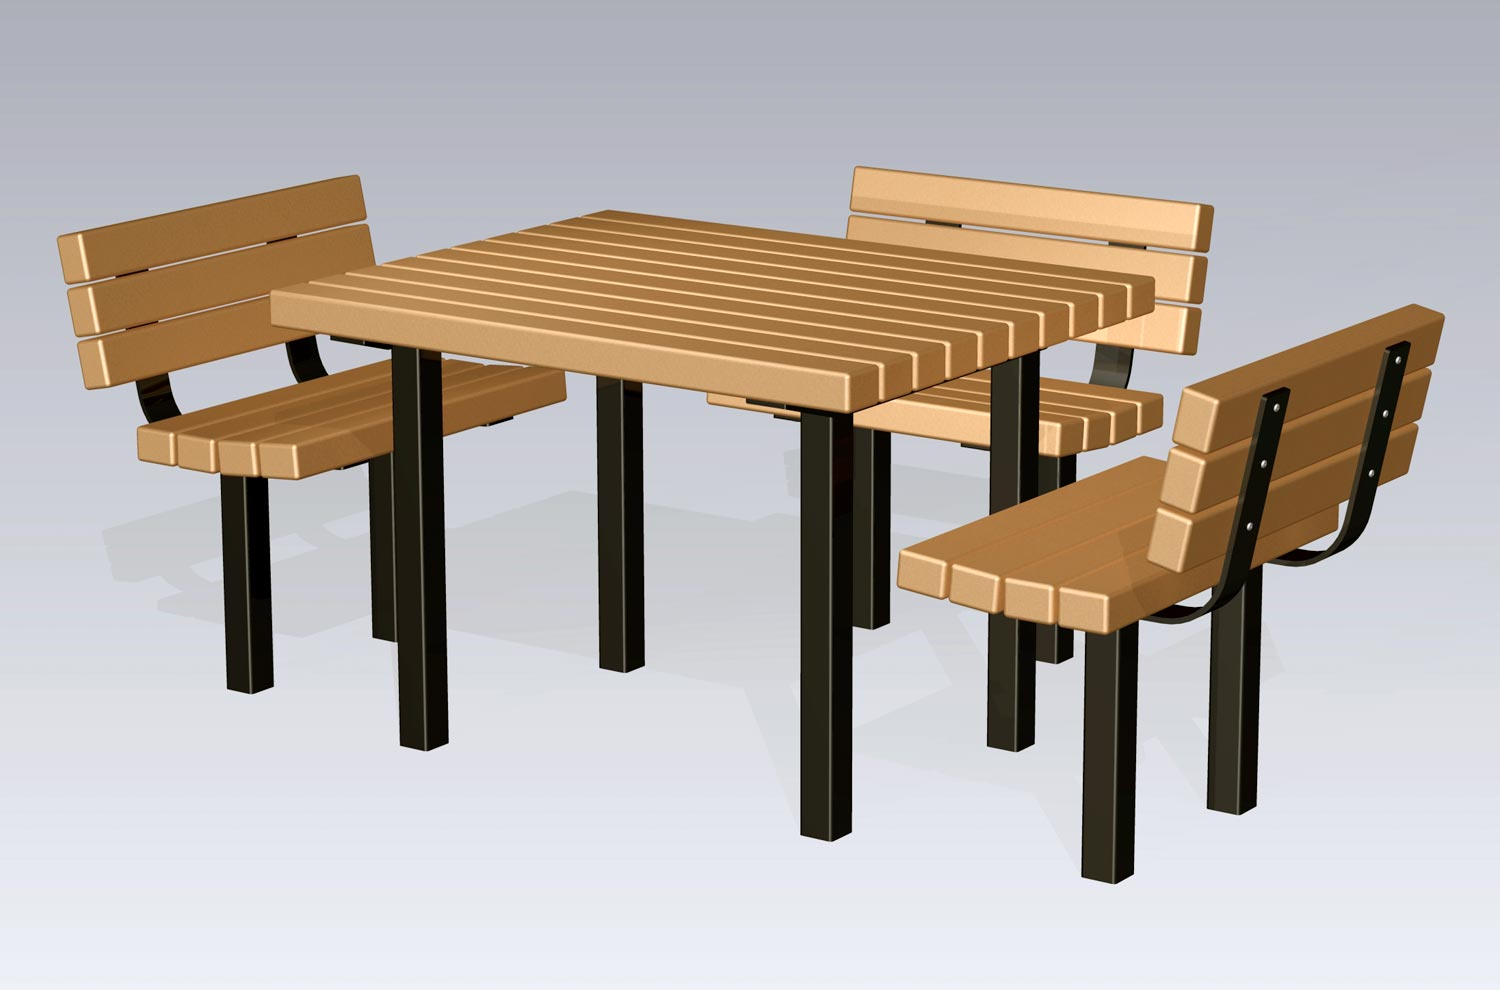 2051 Accessible Table And Chairs (Recycled Plastic Slats),